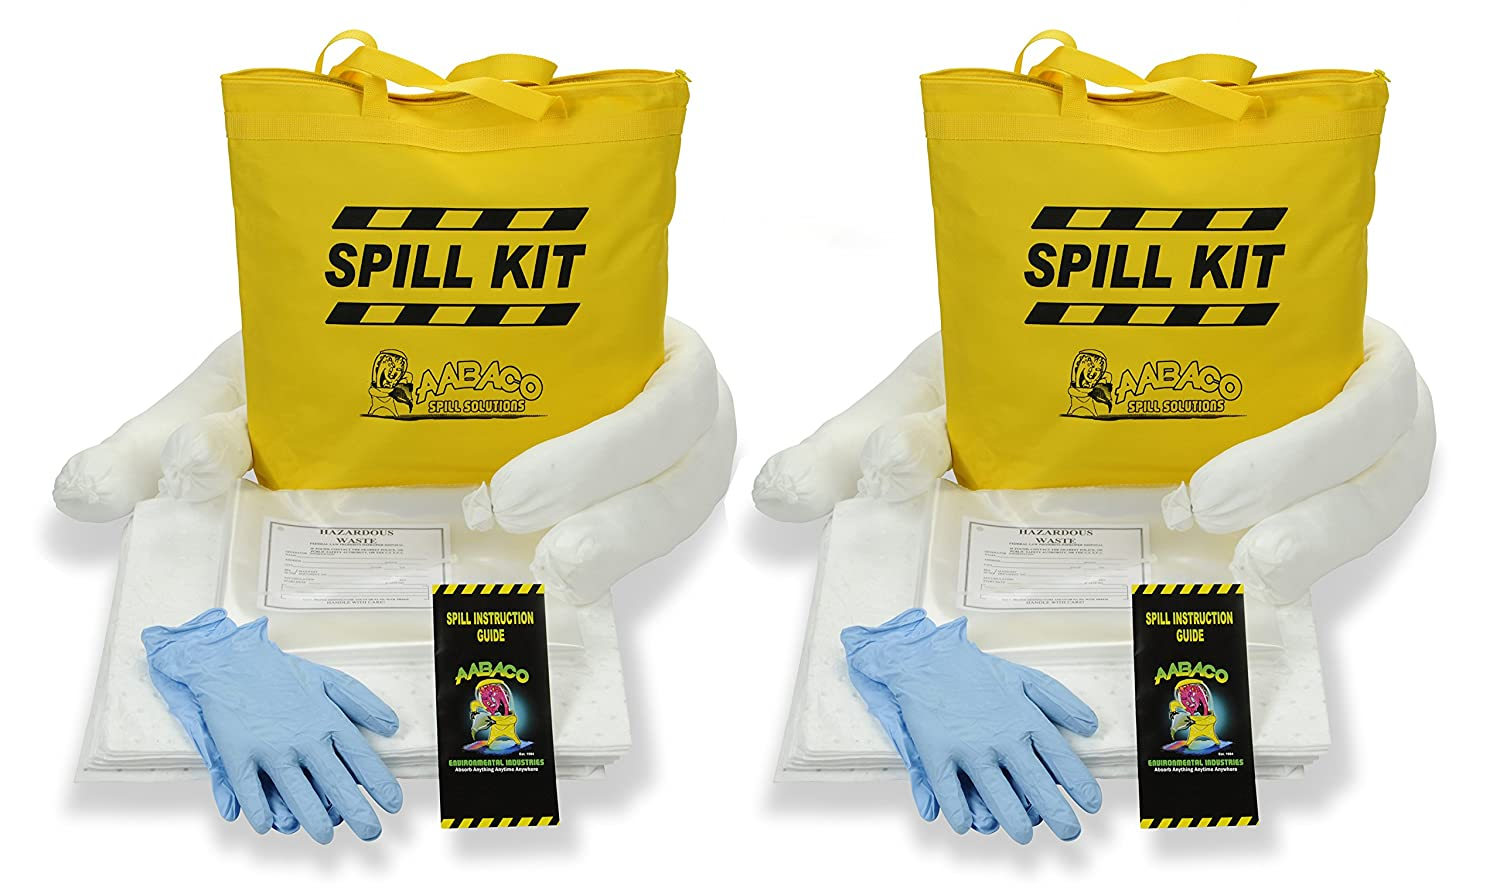 Aabaco Environmental Industries AABACO Oil Only SPILL KIT – Absorbs OIL and FUEL SPILLS – Repels Water – Kits In Portable Yellow Tote Bag For Trucks – Economical Absorbent (1 Kit)